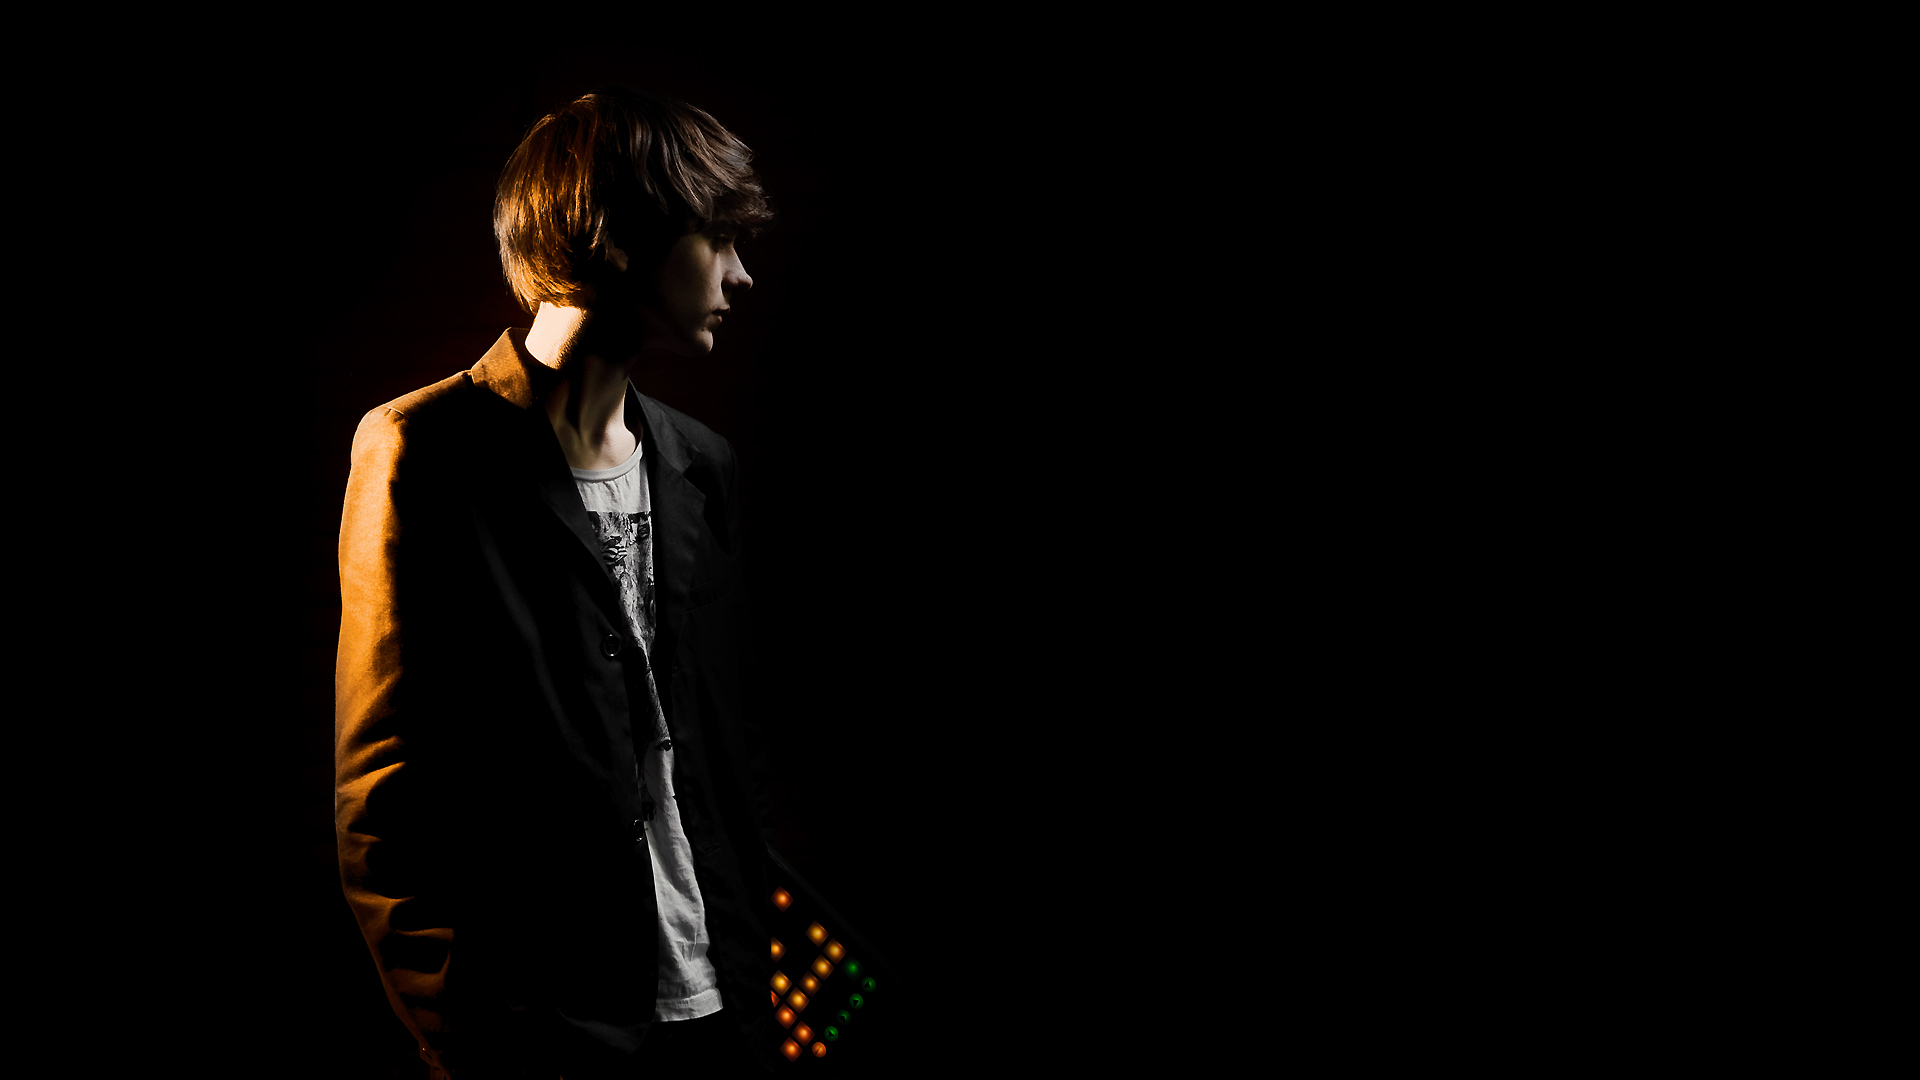 madeon dj hd desktop wallpaper 64698